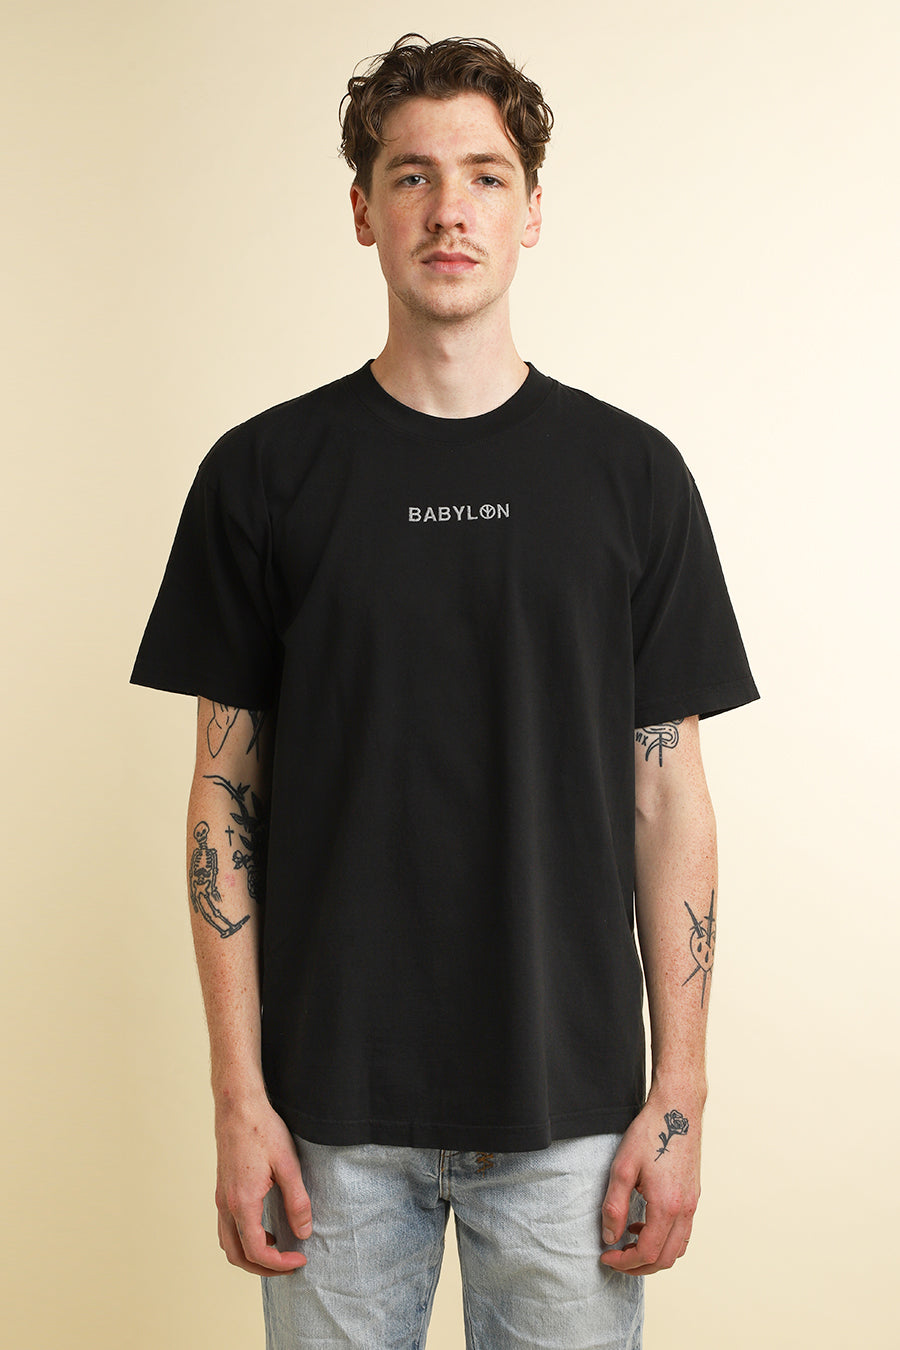 Babylon LA - Black 3M Shop T-Shirt